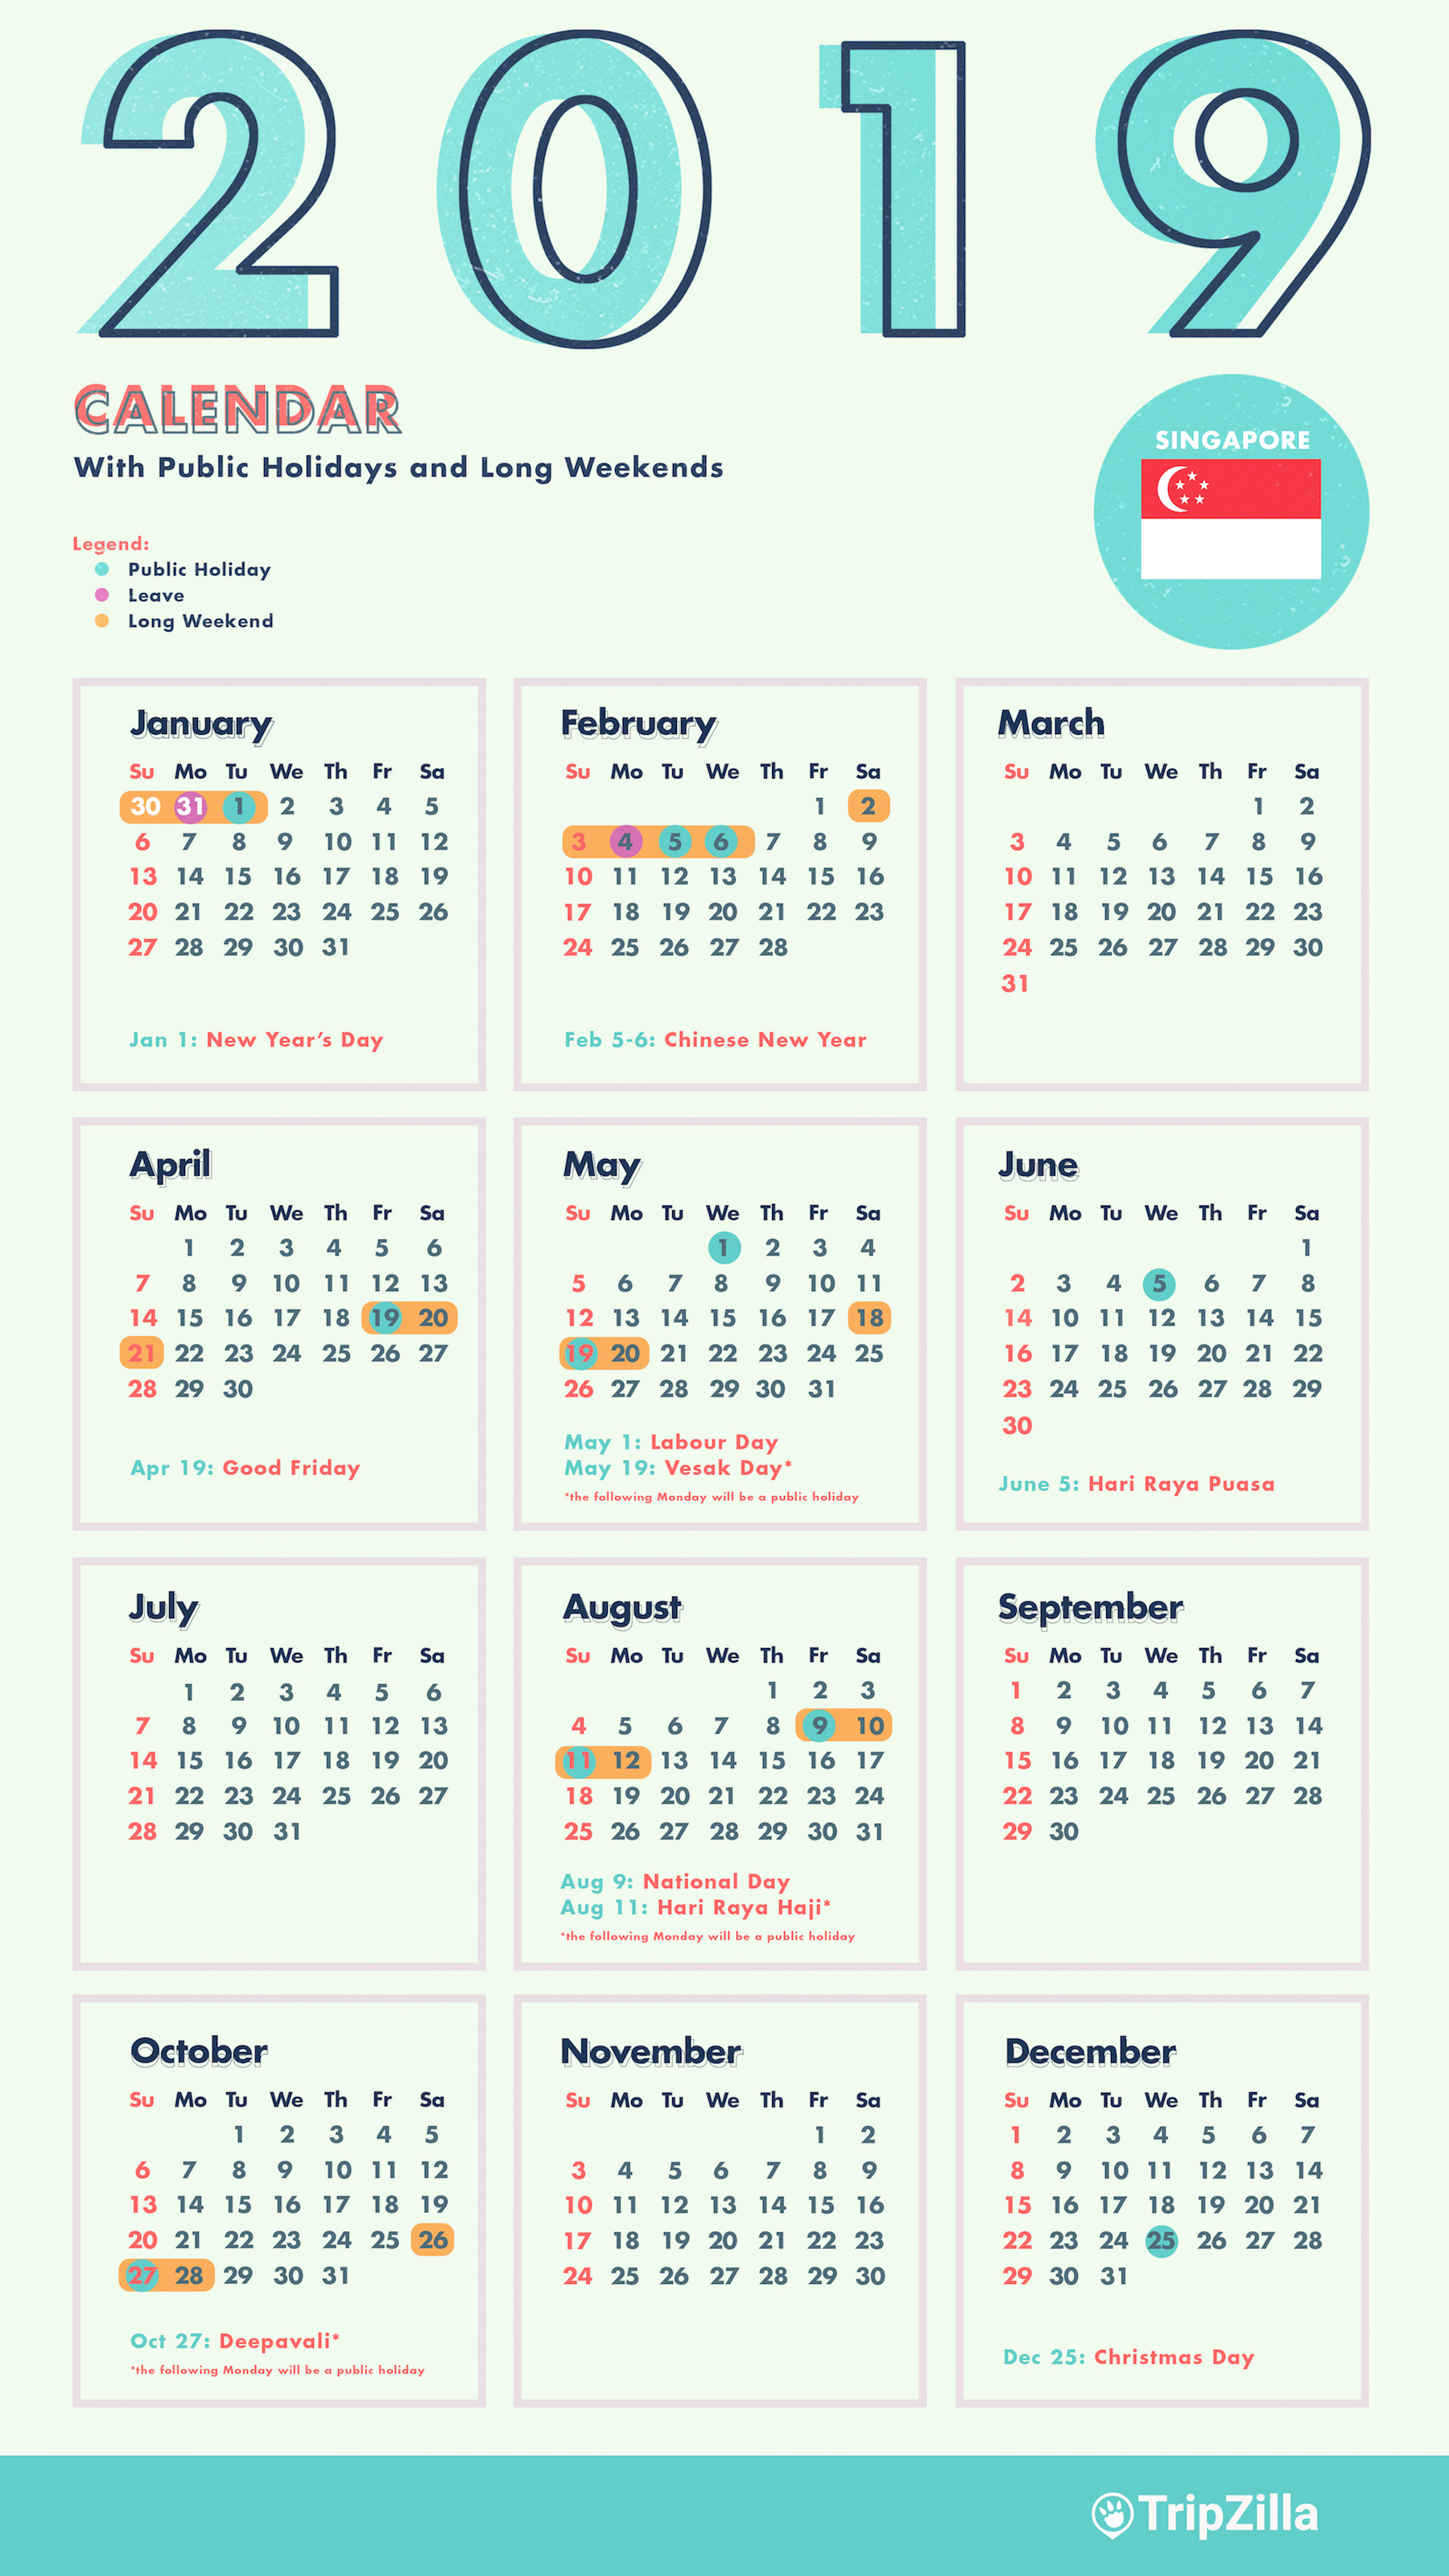 2019 Leave Year Calendar With 6 Long Weekends In Singapore Bonus Cheatsheet